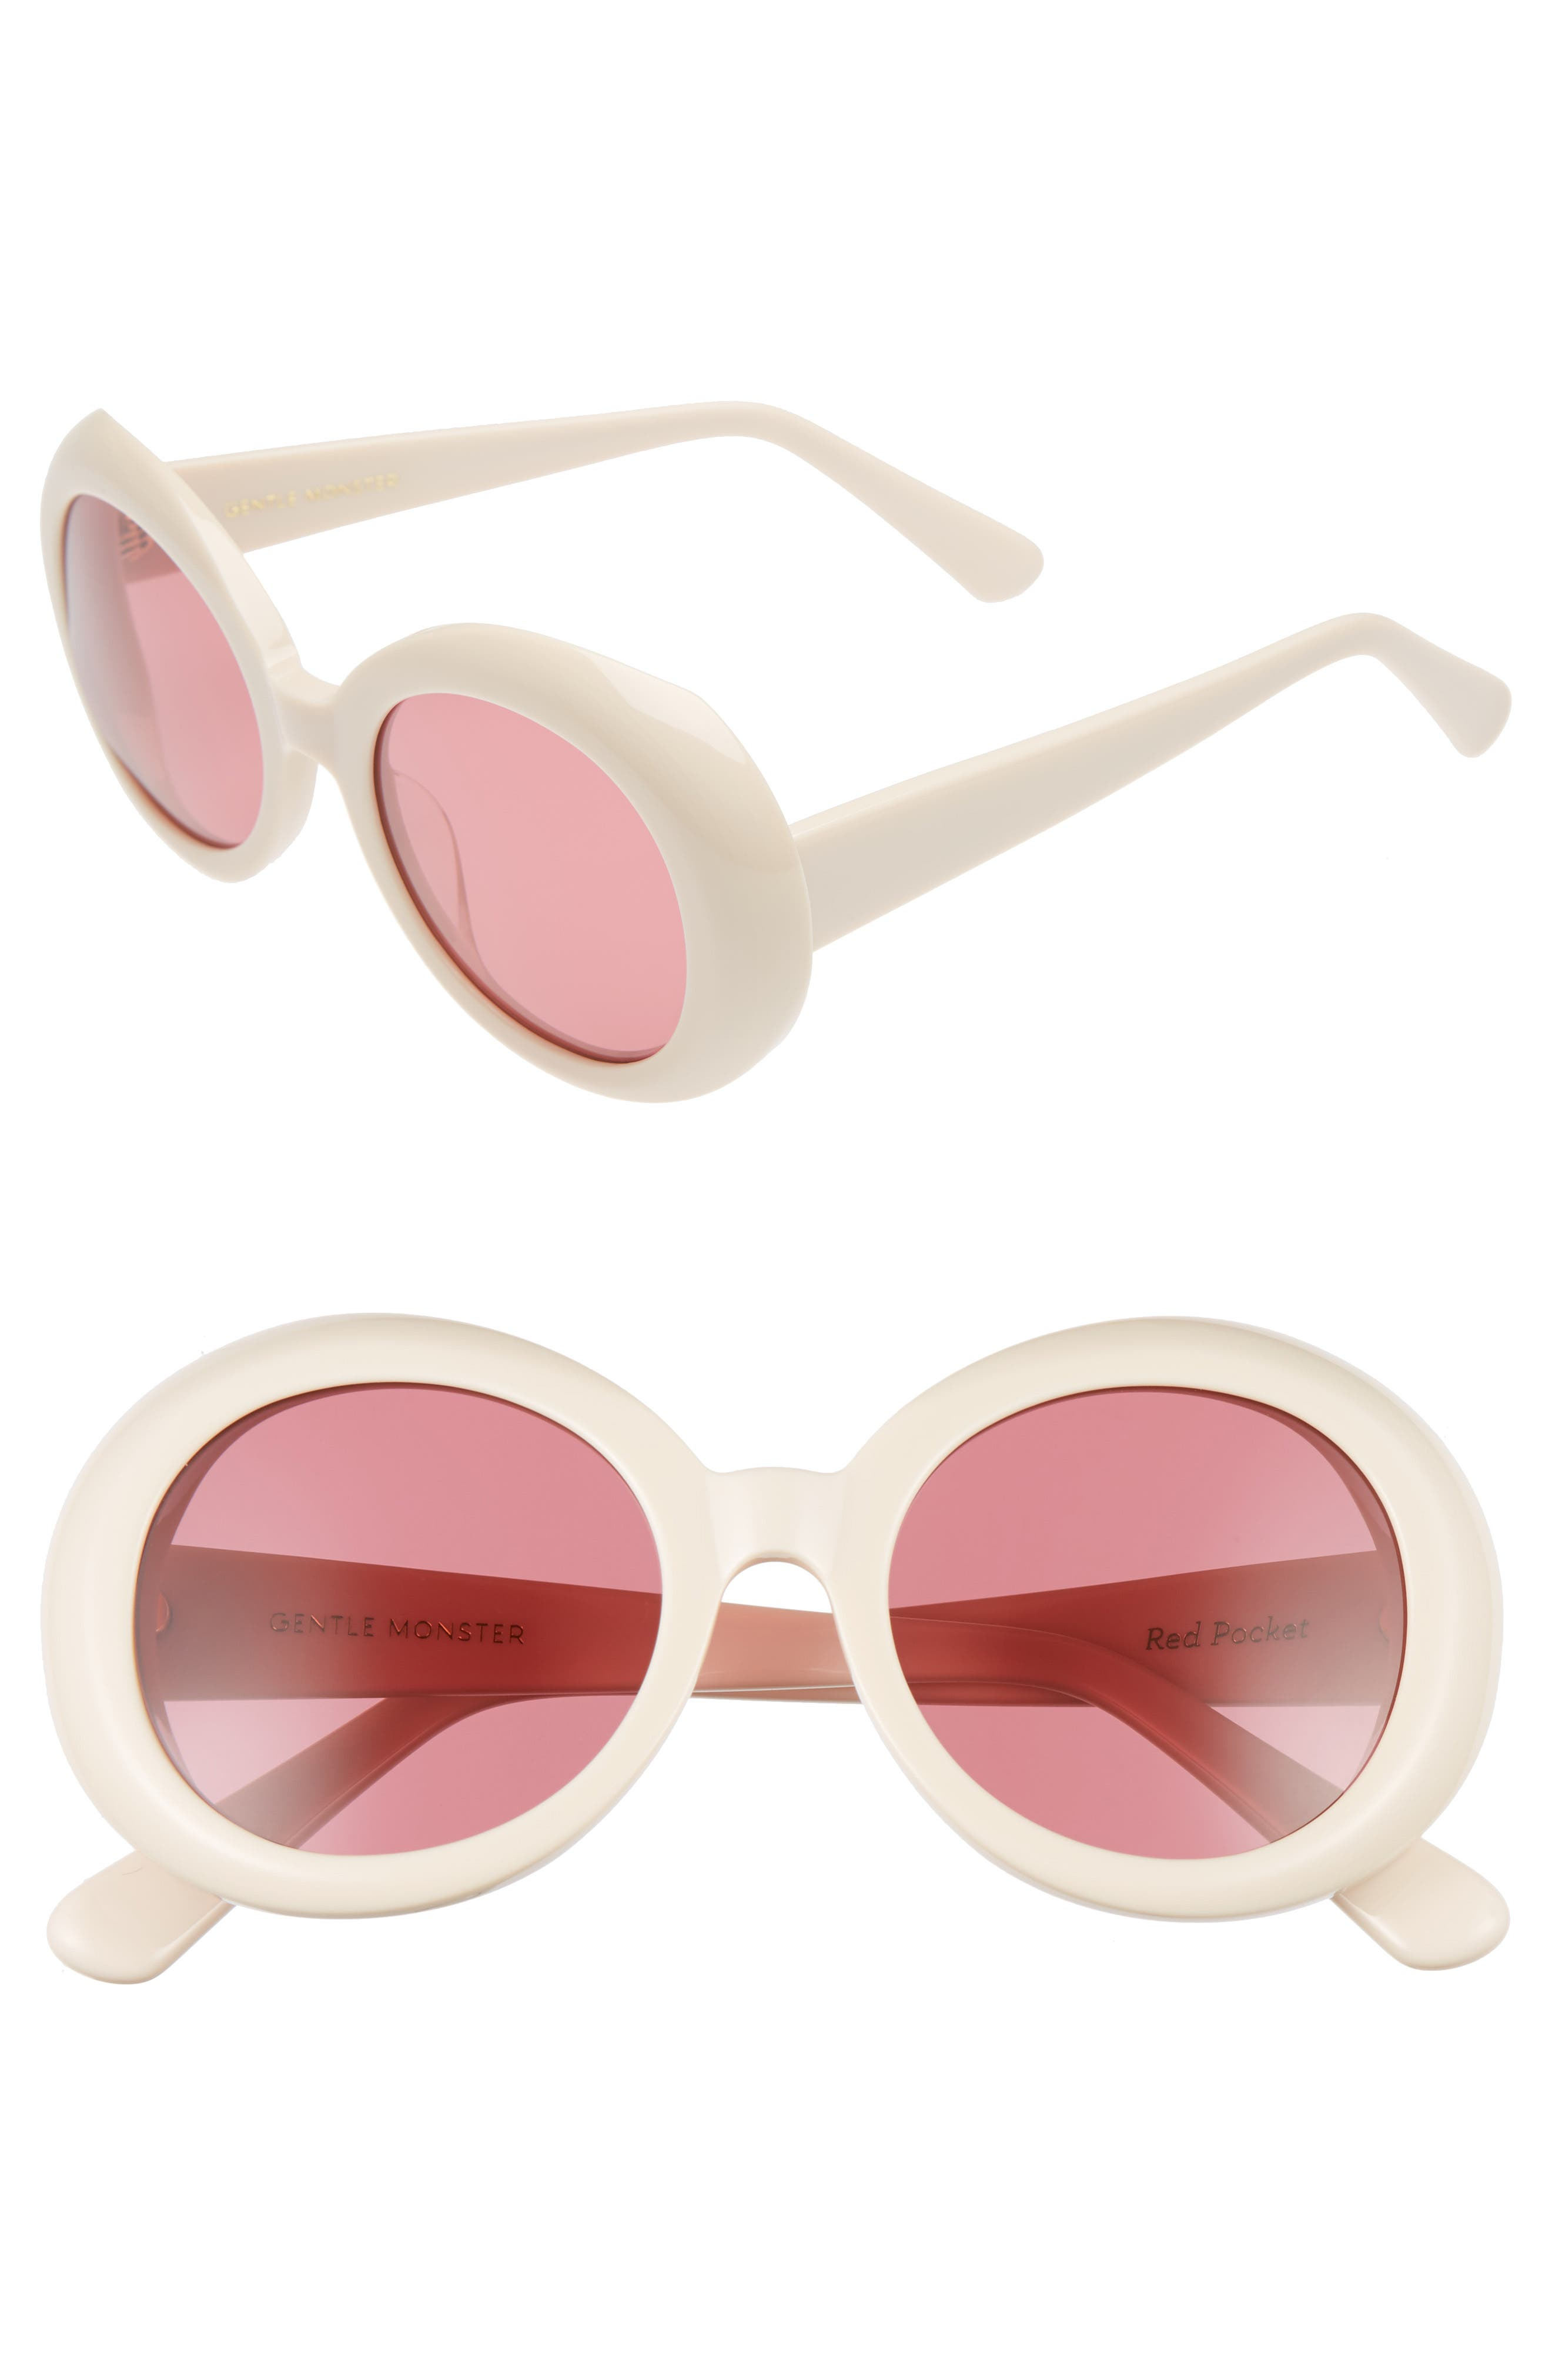 Gentle Monster Red Pocket 52mm Round Sunglasses